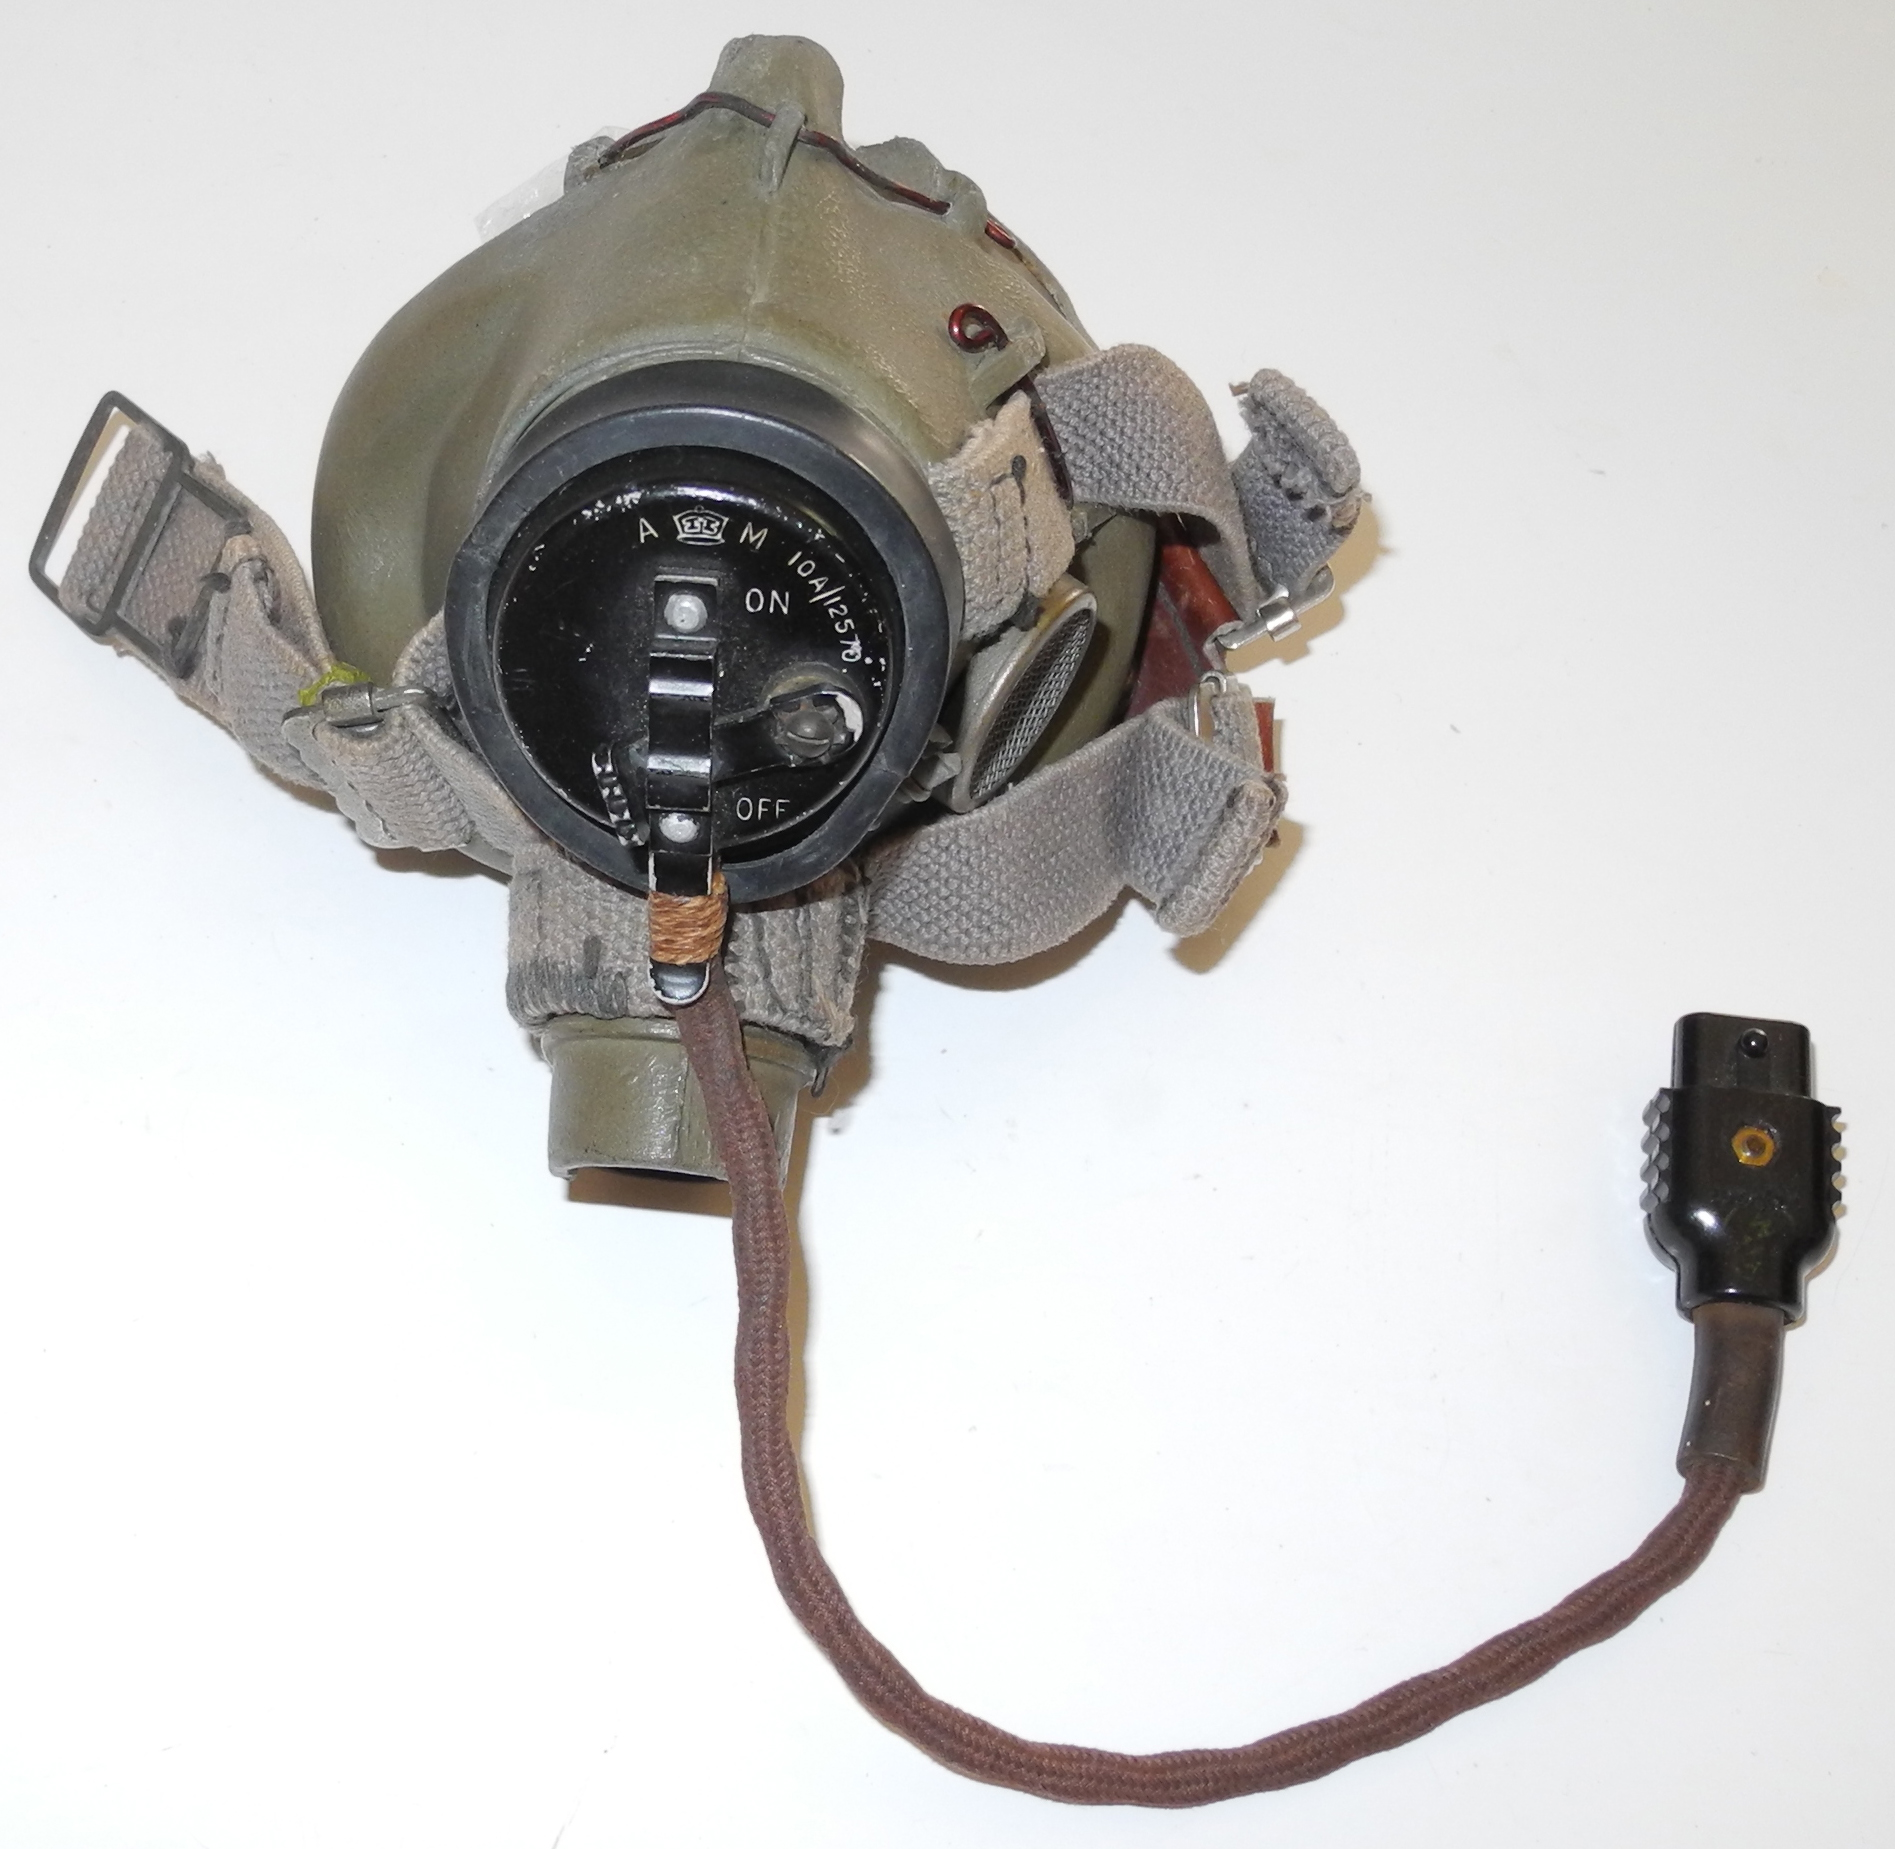 RAF Type G oxygen mask with Type 48 microphone